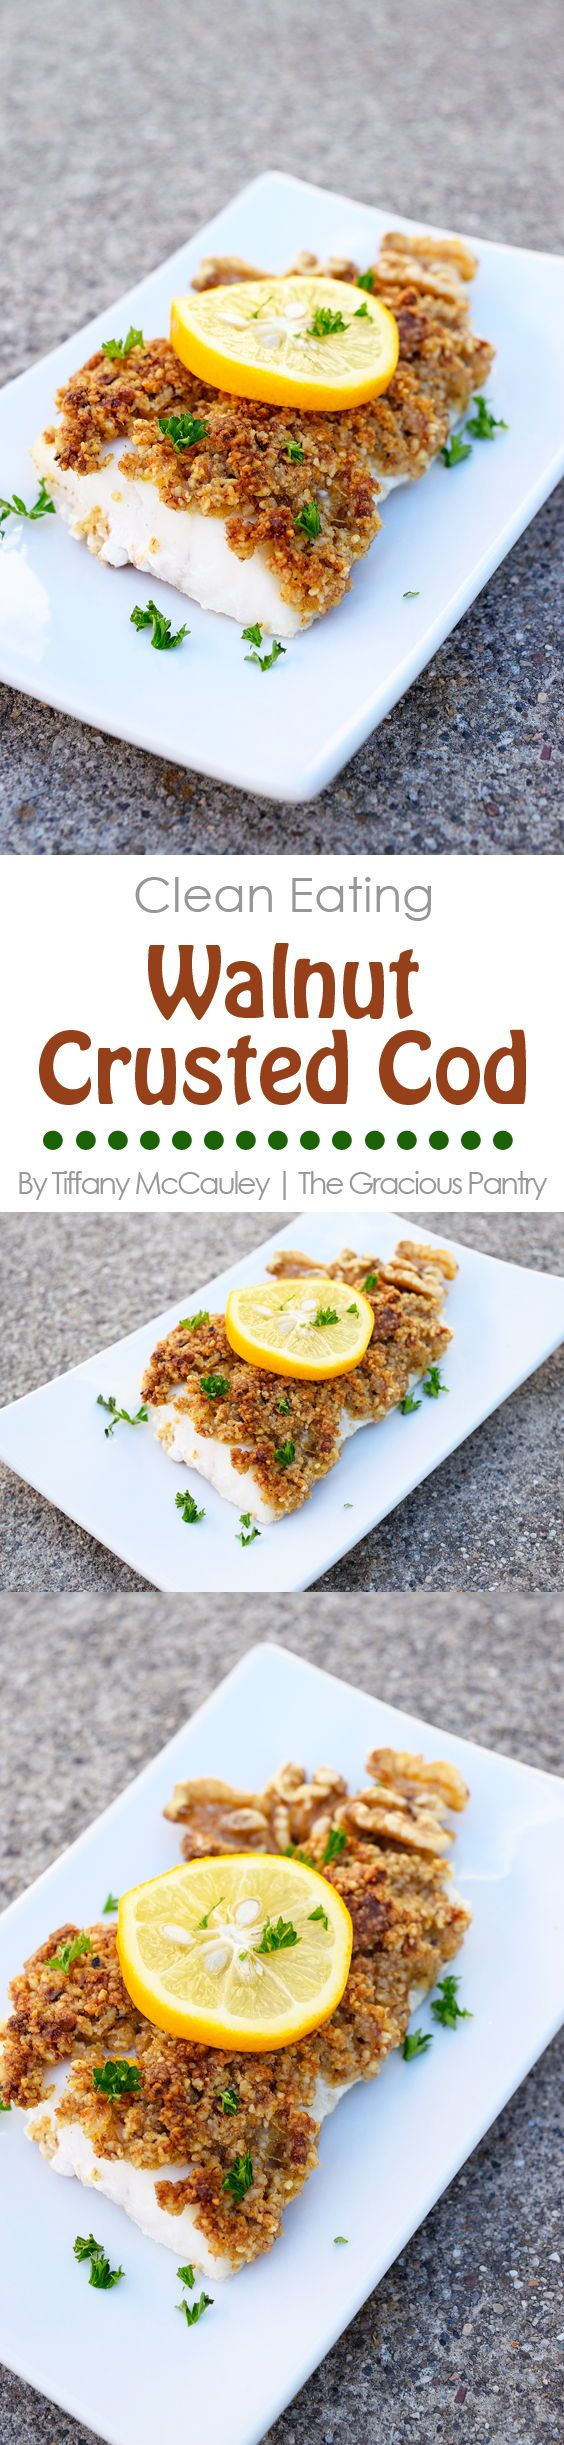 Clean Eating Walnut Crusted Cod Recipe Seafood recipes